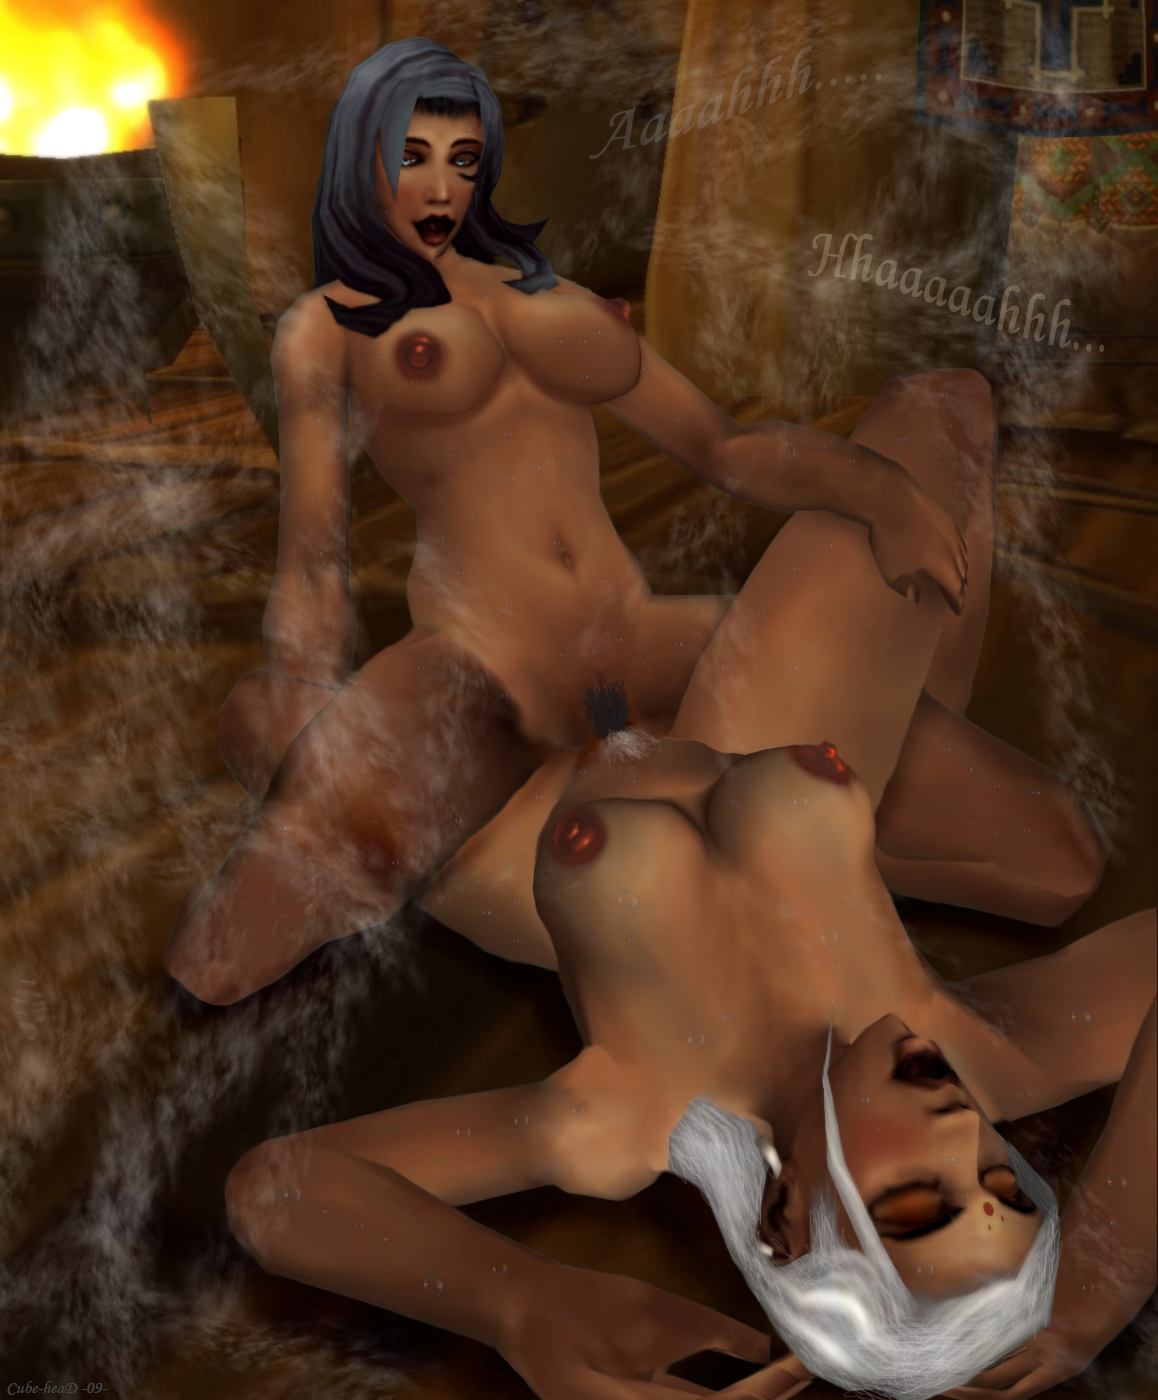 The sims erotic scenes softcore image